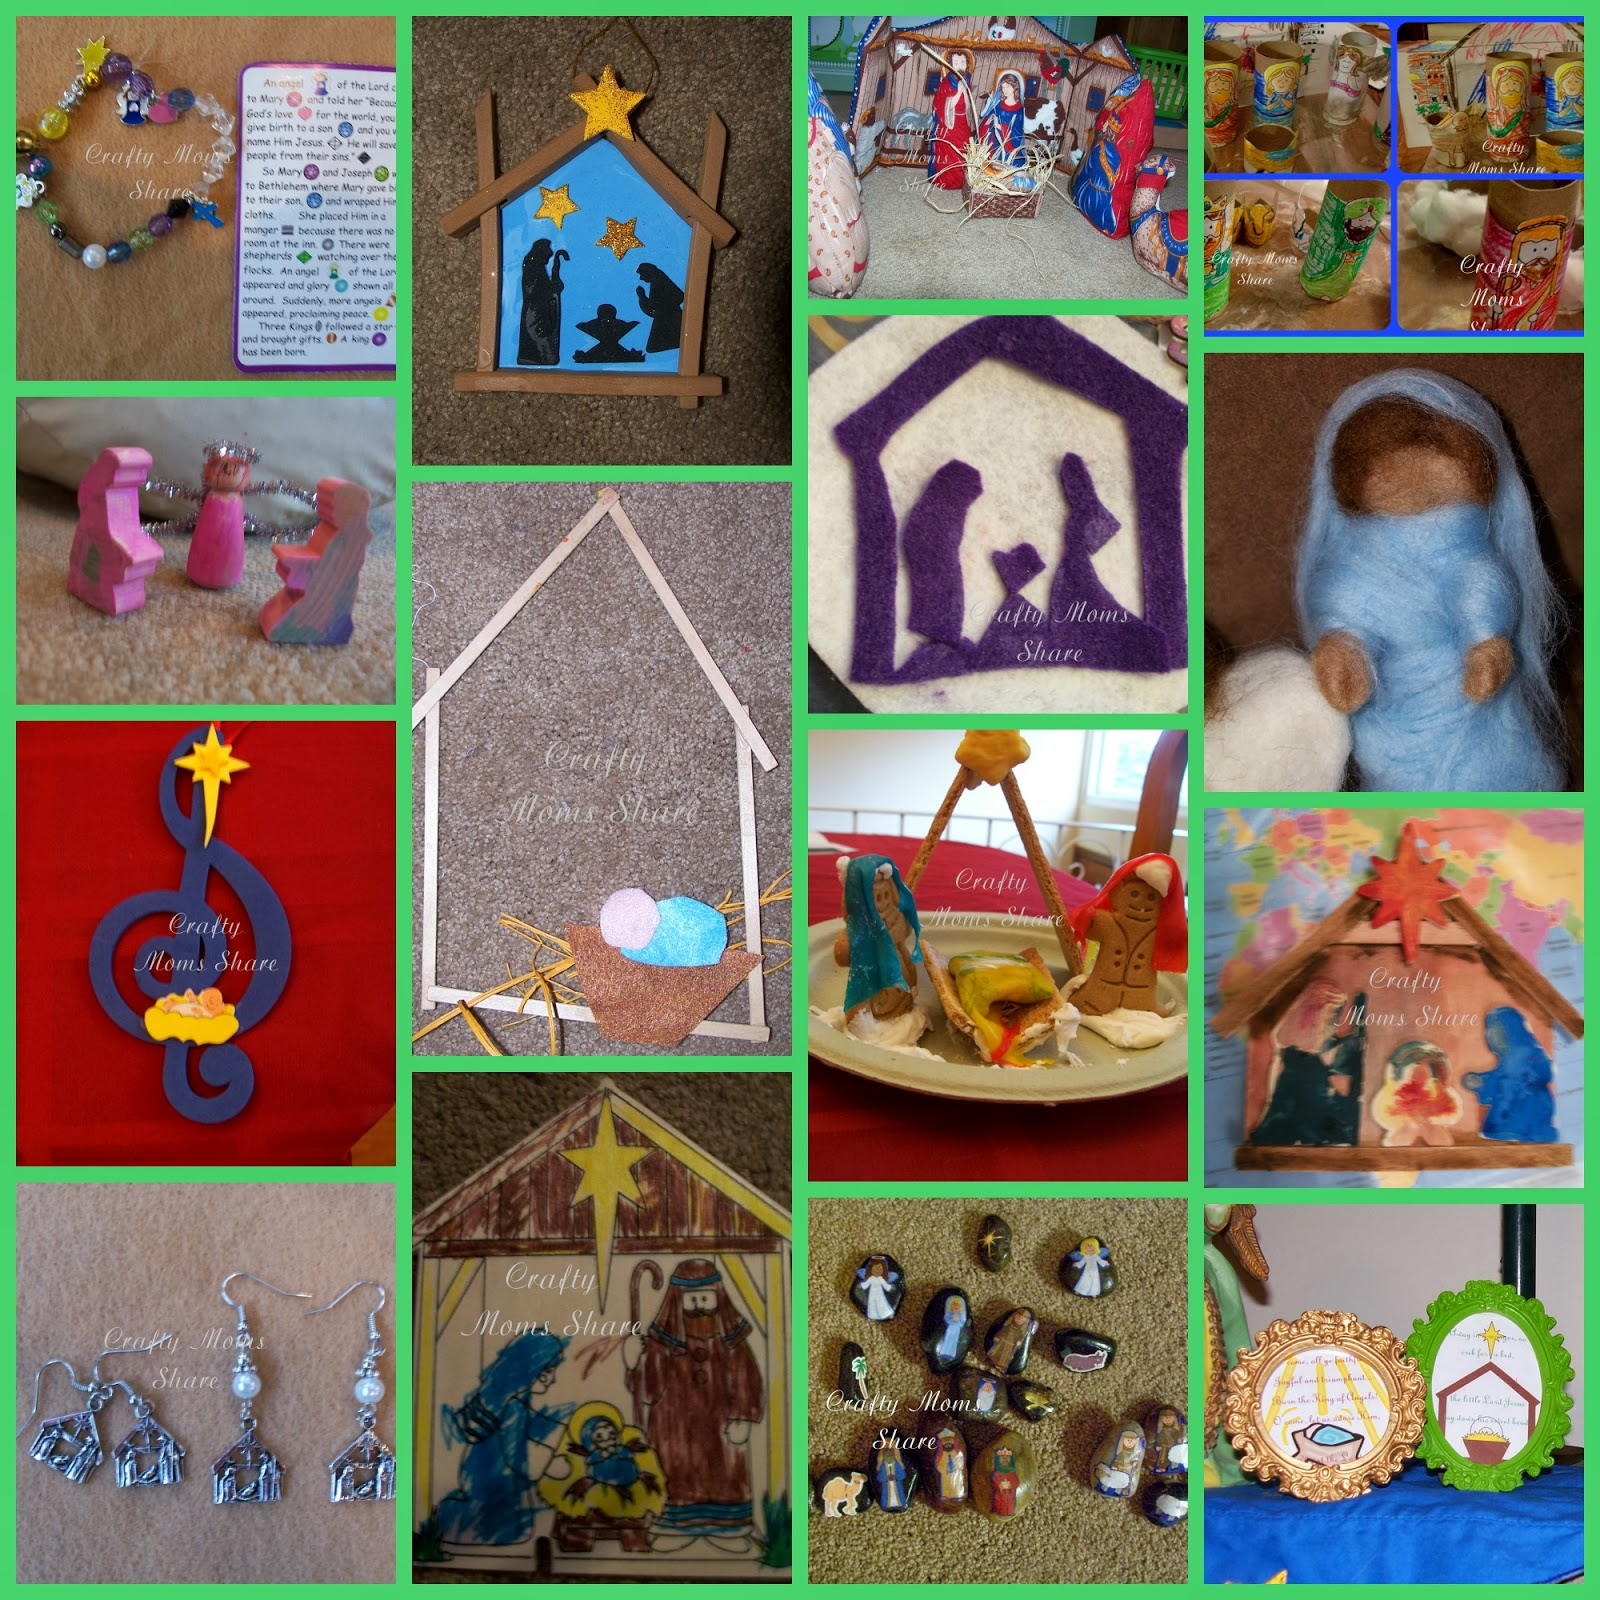 Crafty Moms Share Christmas Crafts Round Up From 2011